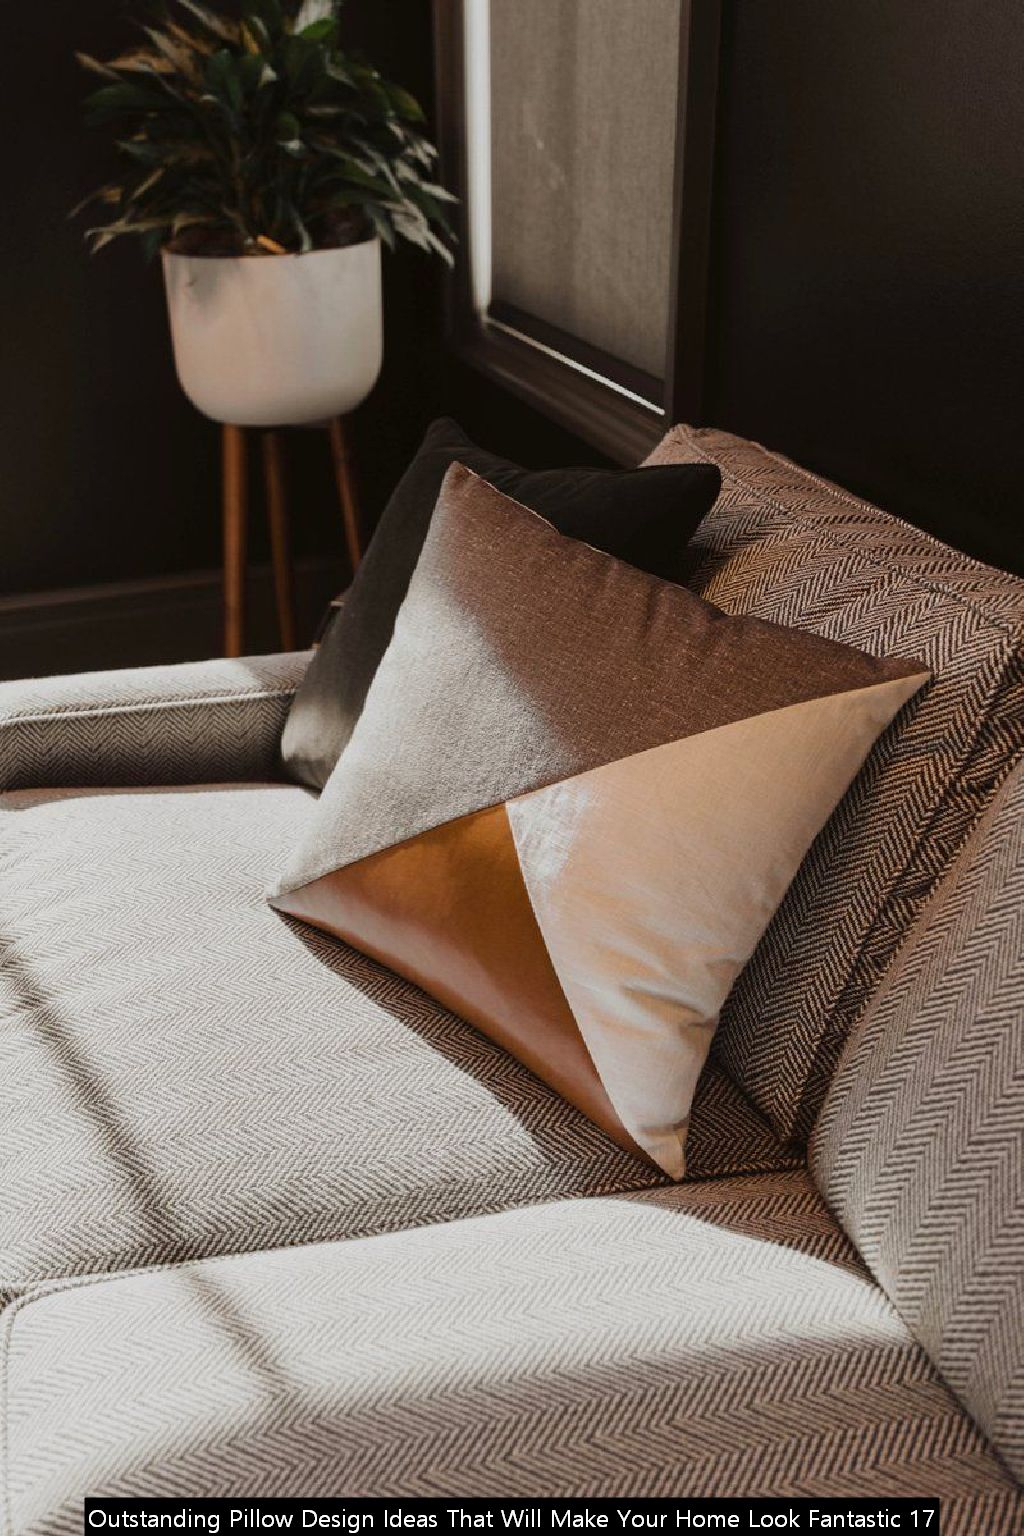 Outstanding Pillow Design Ideas That Will Make Your Home Look Fantastic 17